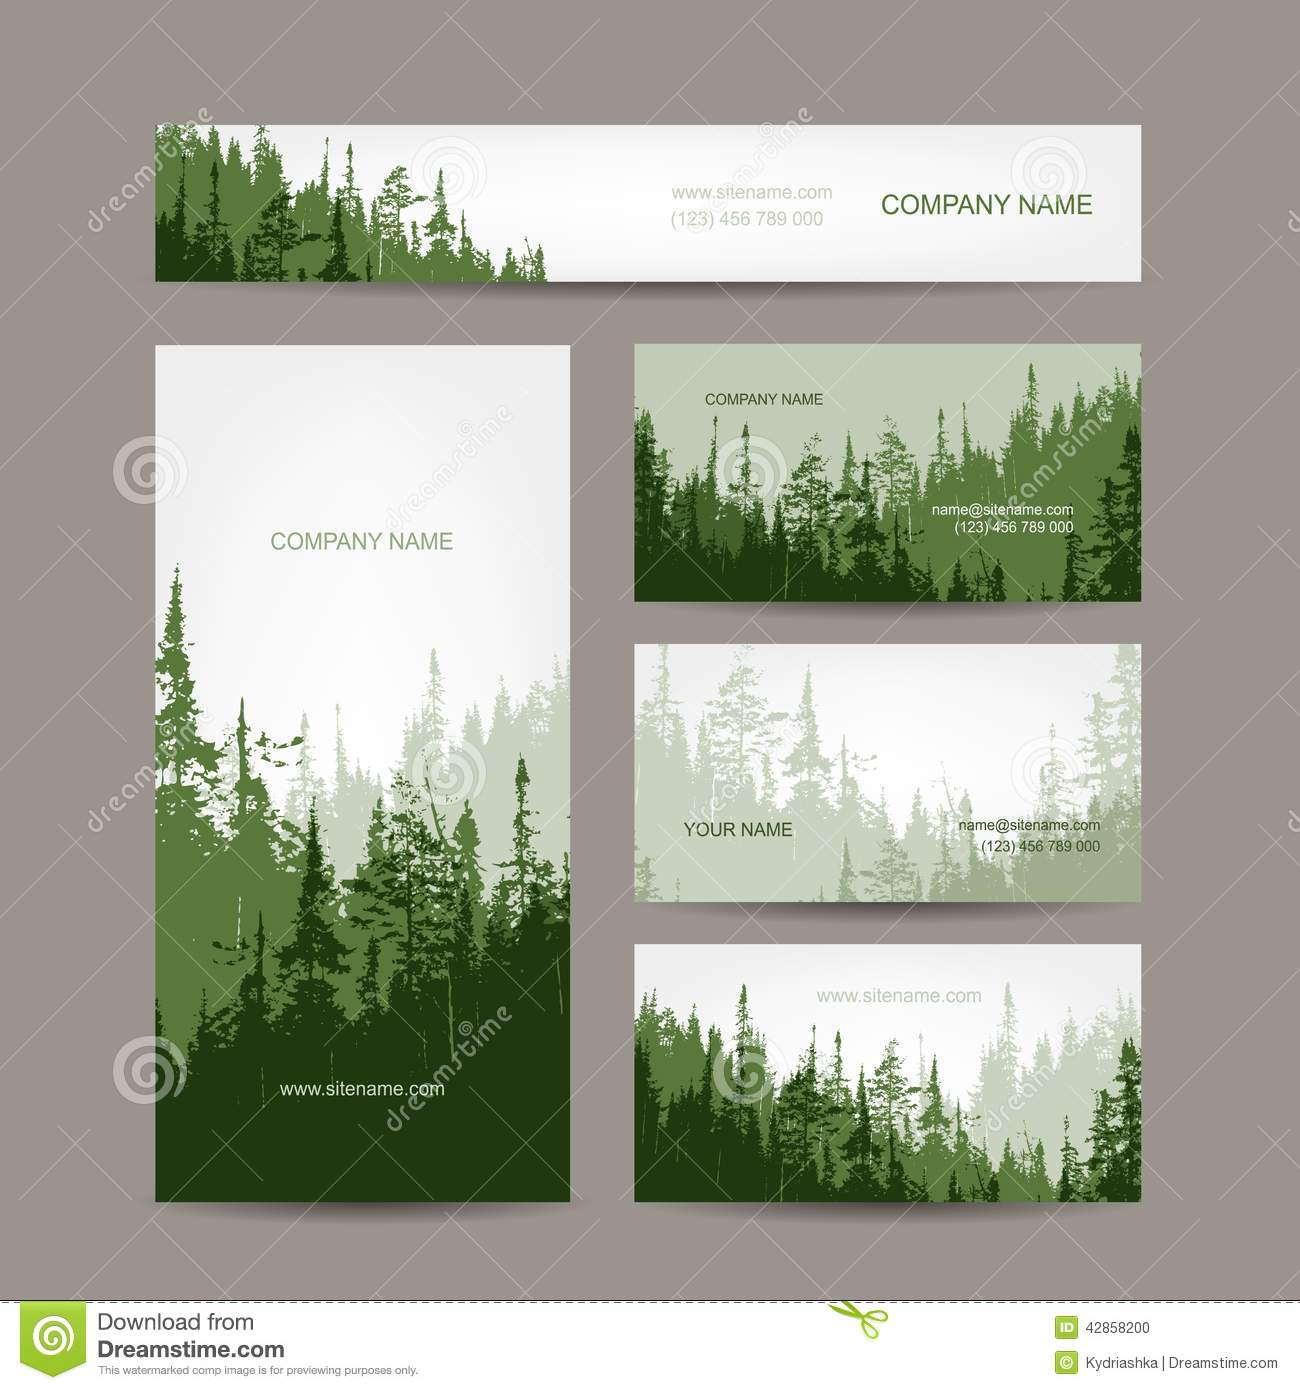 Business cards design with green forest background stock for Green design company